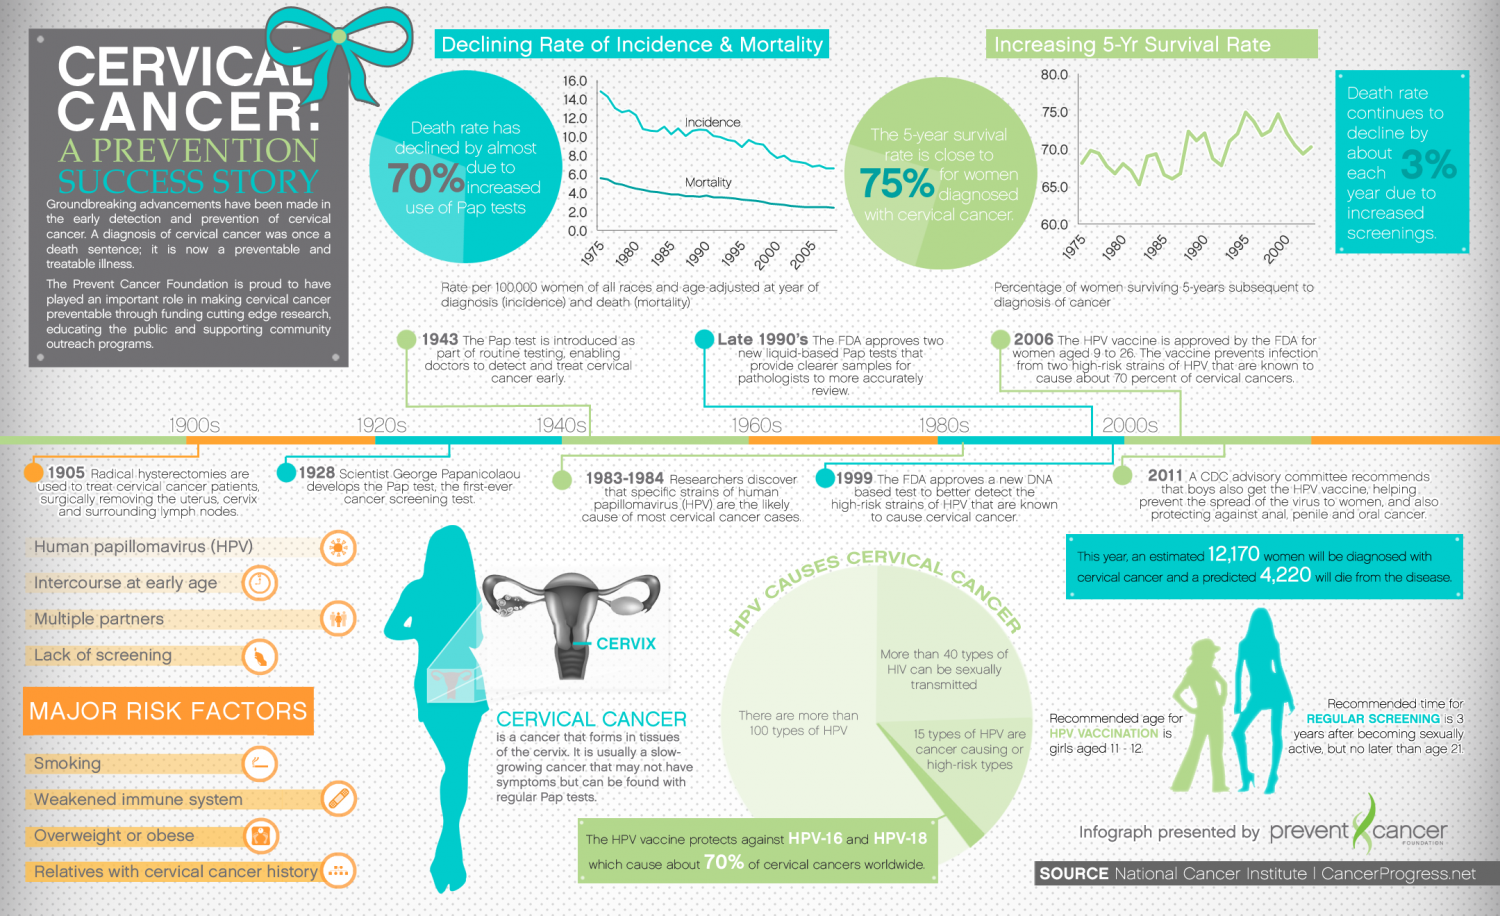 Foundation Debuts Cervical Cancer Prevention Infographic